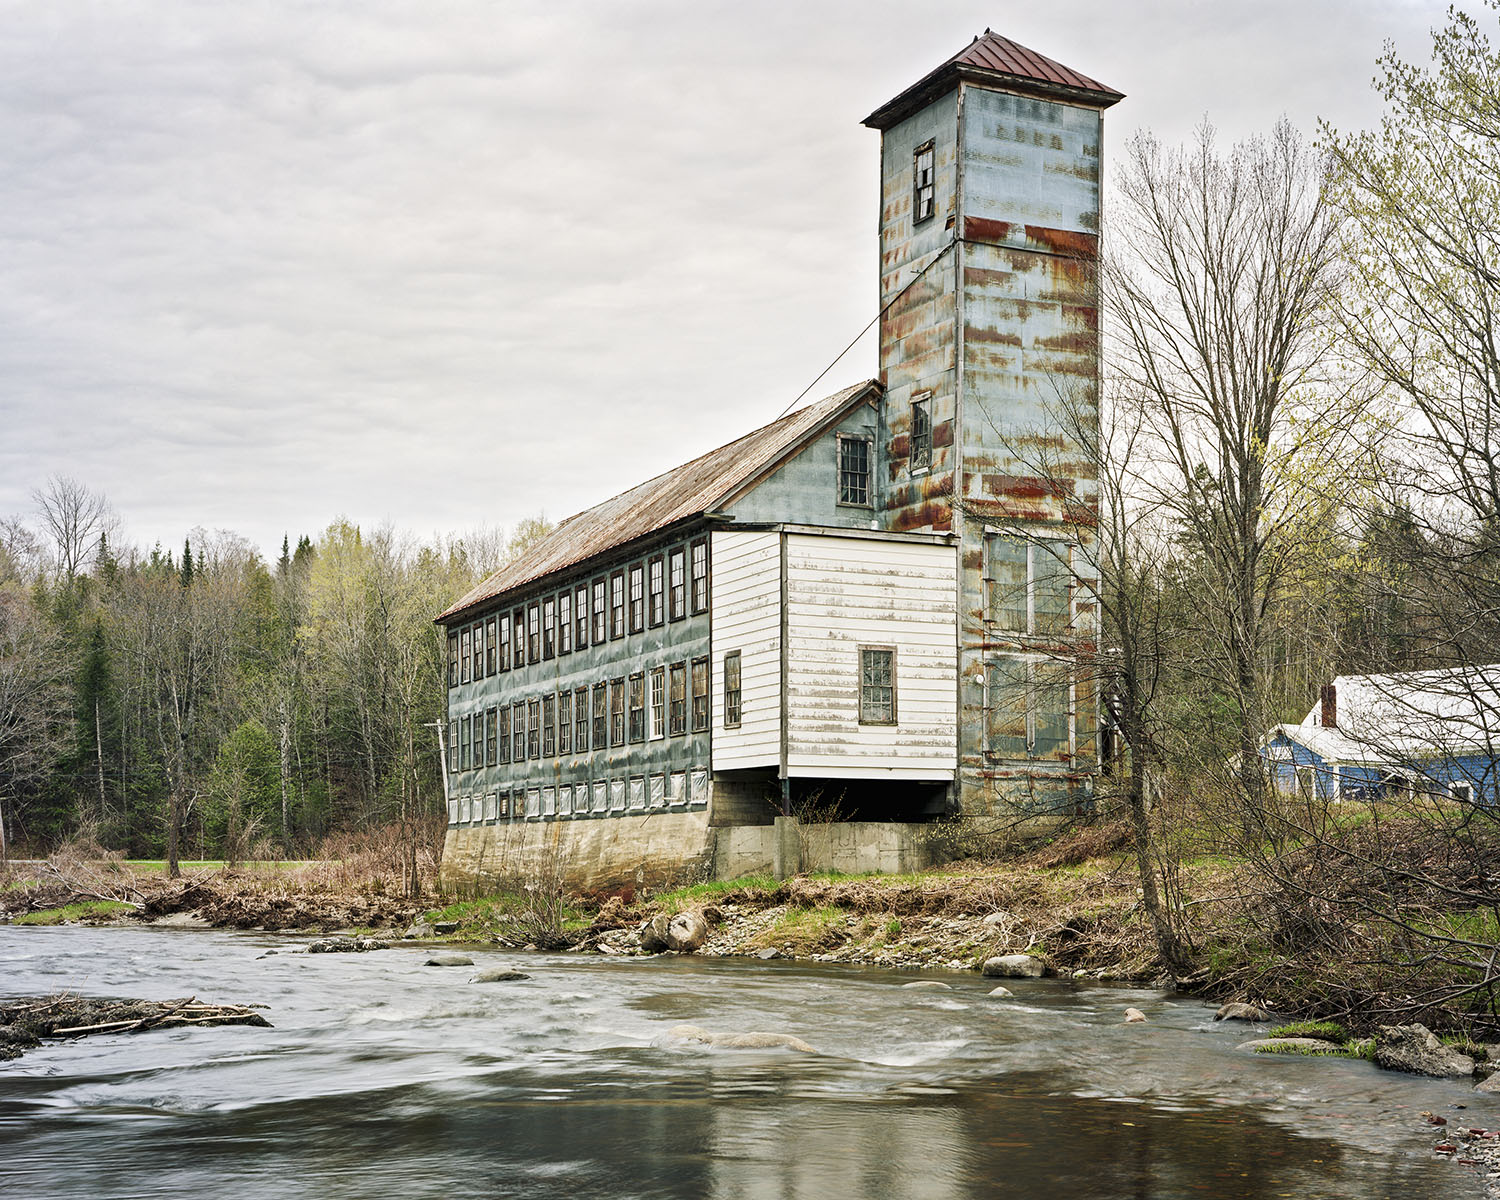 Christopher Payne  Bartlettyarns, Harmony, Maine, 2010  Archival inkjet print 7 x 9, signed and numbered edition of 5 $150